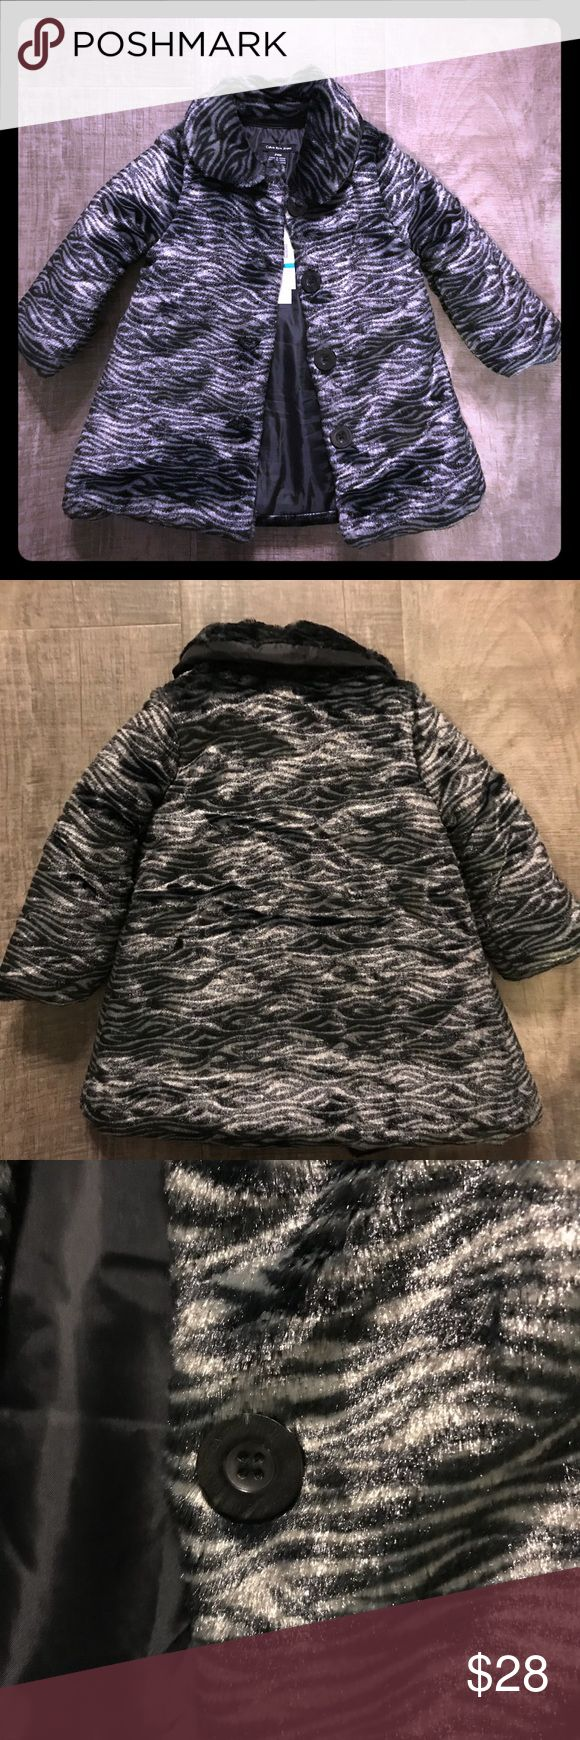 Calvin Klein Jeans infant girls faux fur coat Adorable gray and black lined faux fur coat. Button down coat is new with tags and size 24 months. Calvin Klein Jeans Jackets & Coats Pea Coats